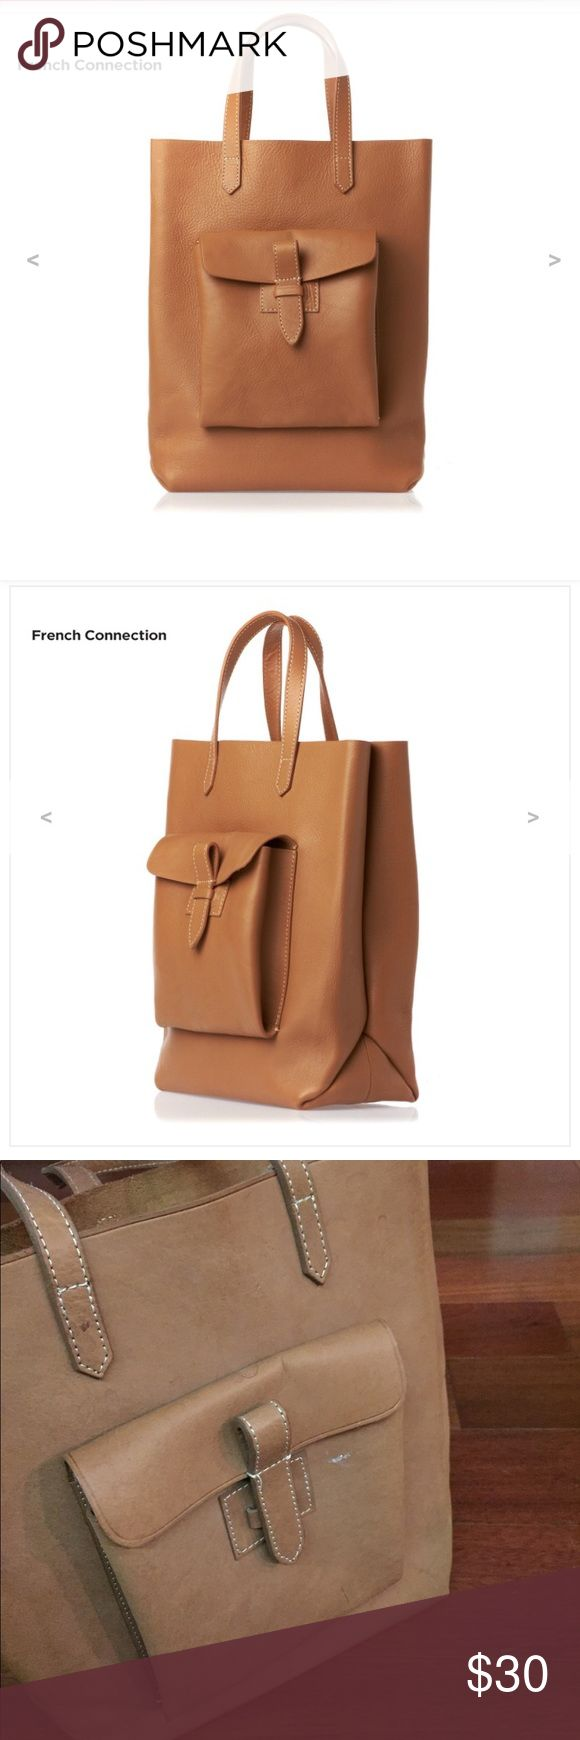 French Connection Shopper Tote 100% Leather 100% Leather super durable. Minor imperfections. Has a lot of life left!!!! I'm sure a shoe repair place or Leather Spa can fix the markings for a reasonable price. French Connection Bags